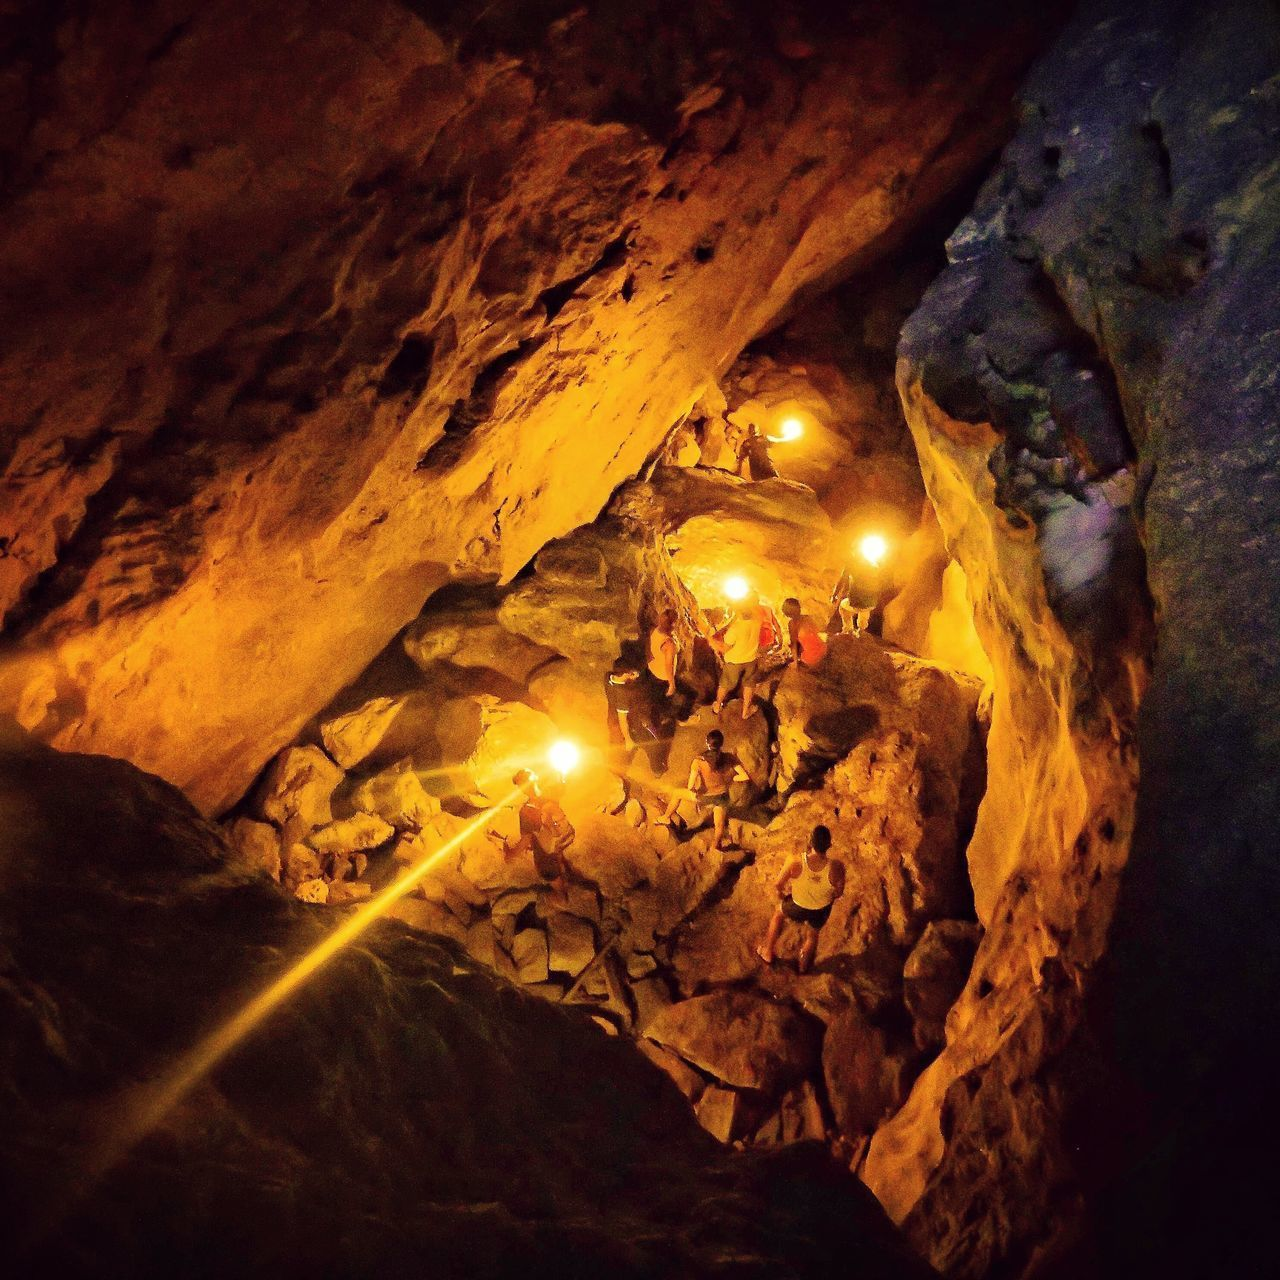 rock formation, rock - object, cave, illuminated, real people, nature, leisure activity, adventure, beauty in nature, indoors, physical geography, scenics, one person, night, water, sky, people